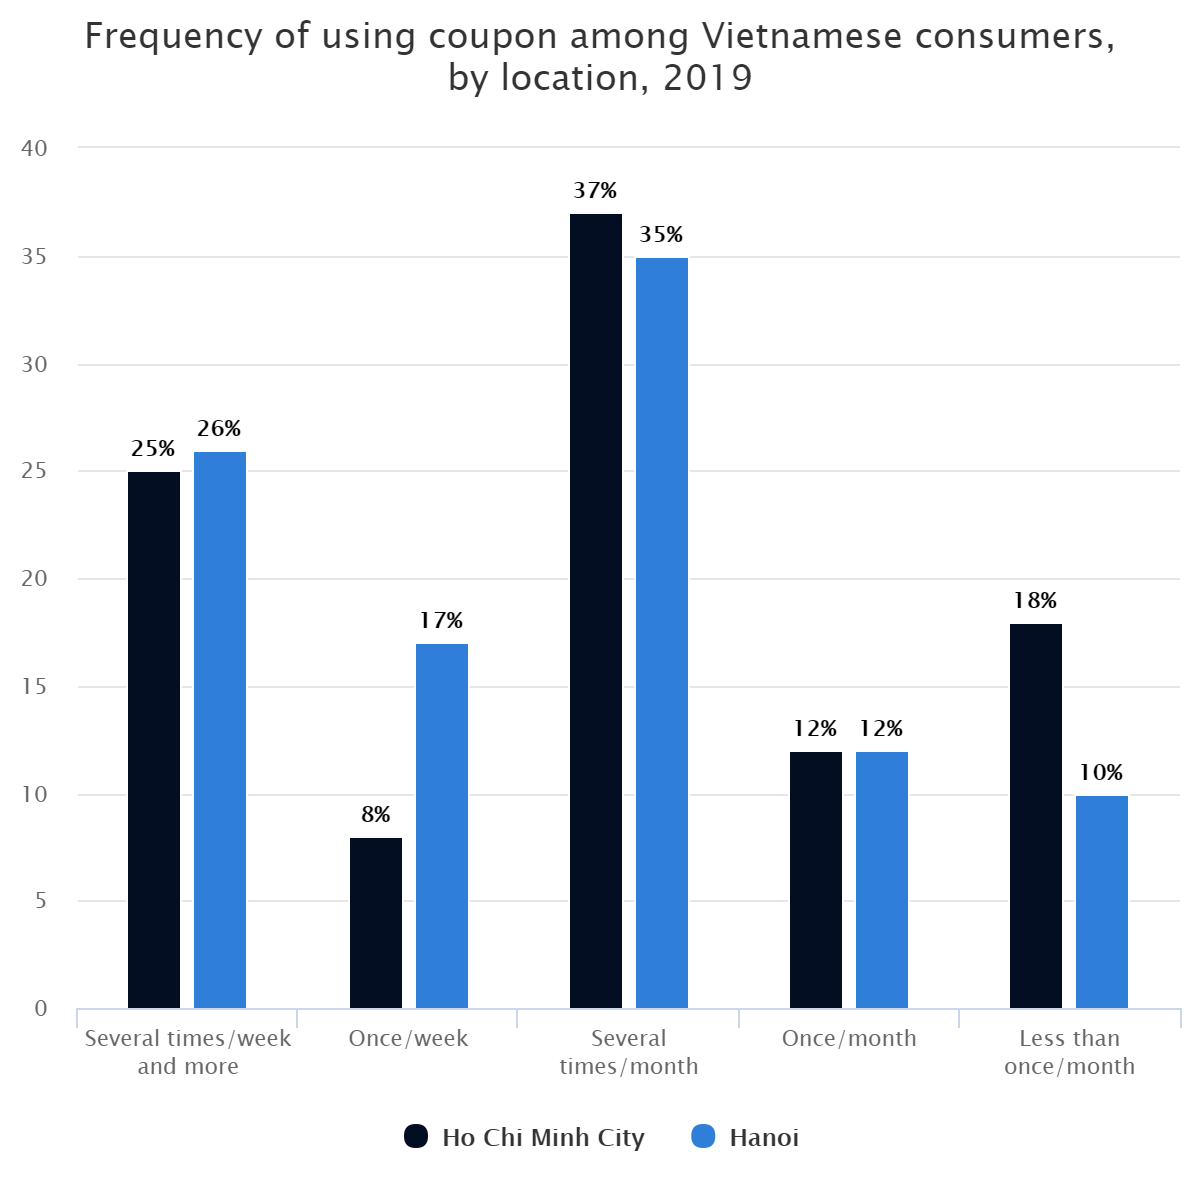 Frequency of using coupon among Vietnamese consumers, by location, 2019